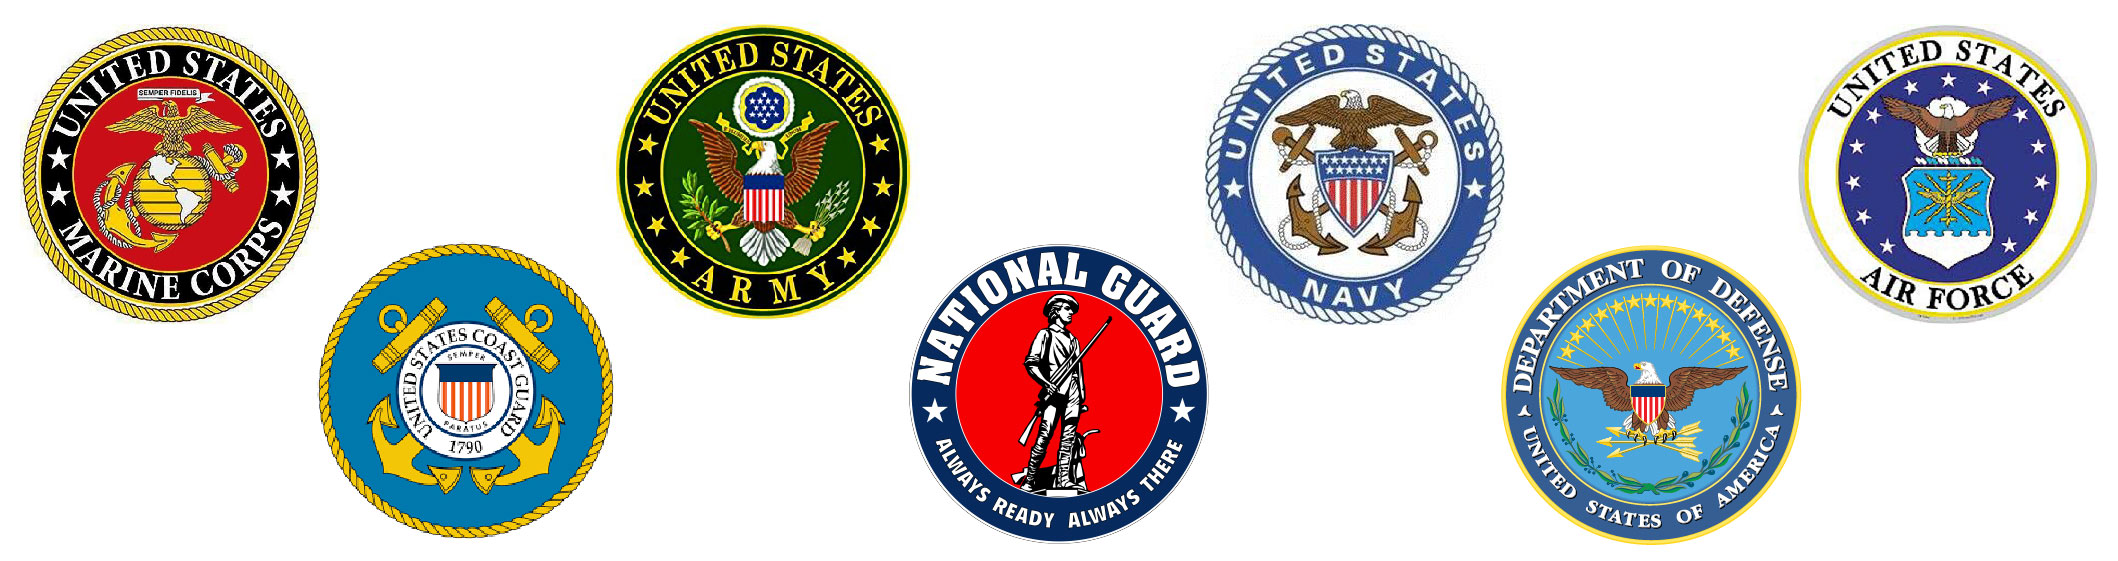 All of the United States Military Emblems, for Marine Corps, Coast Guard, Army, National Guard, Navy, Department of Defense and Air Force